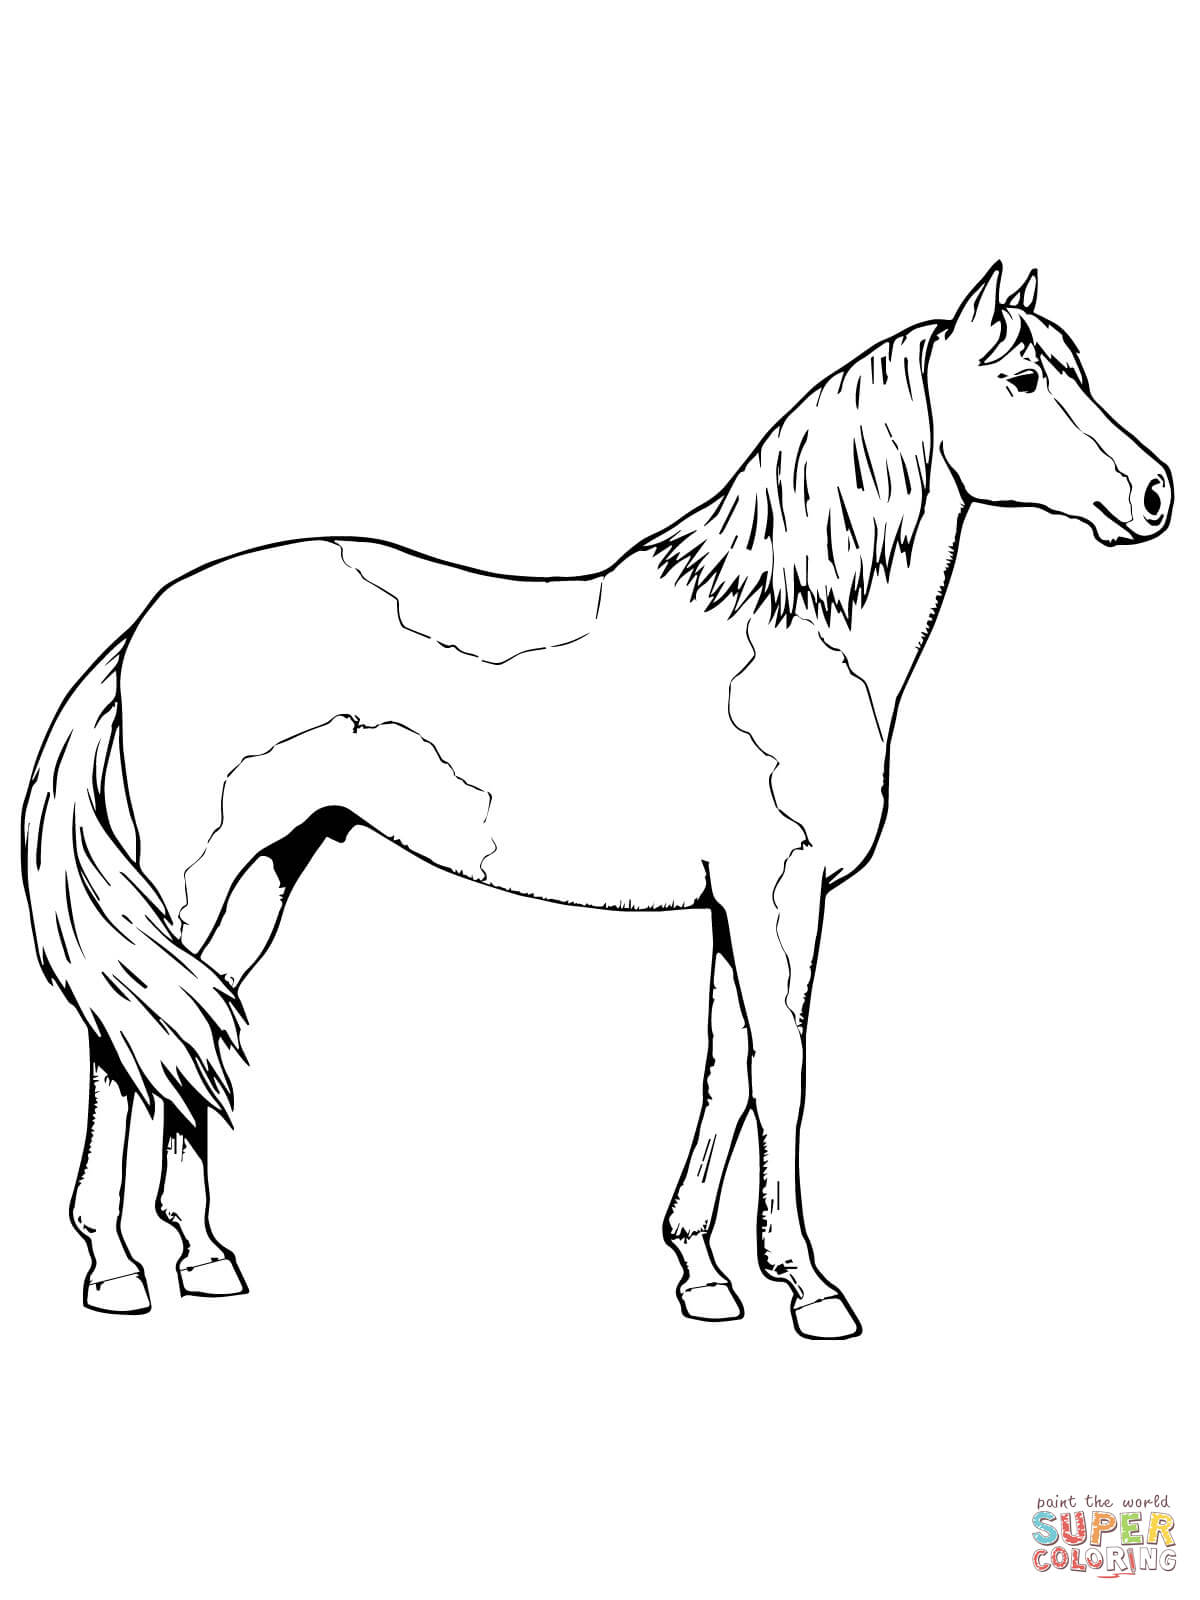 pictures of horses to colour in top 55 free printable horse coloring pages online of to pictures horses colour in